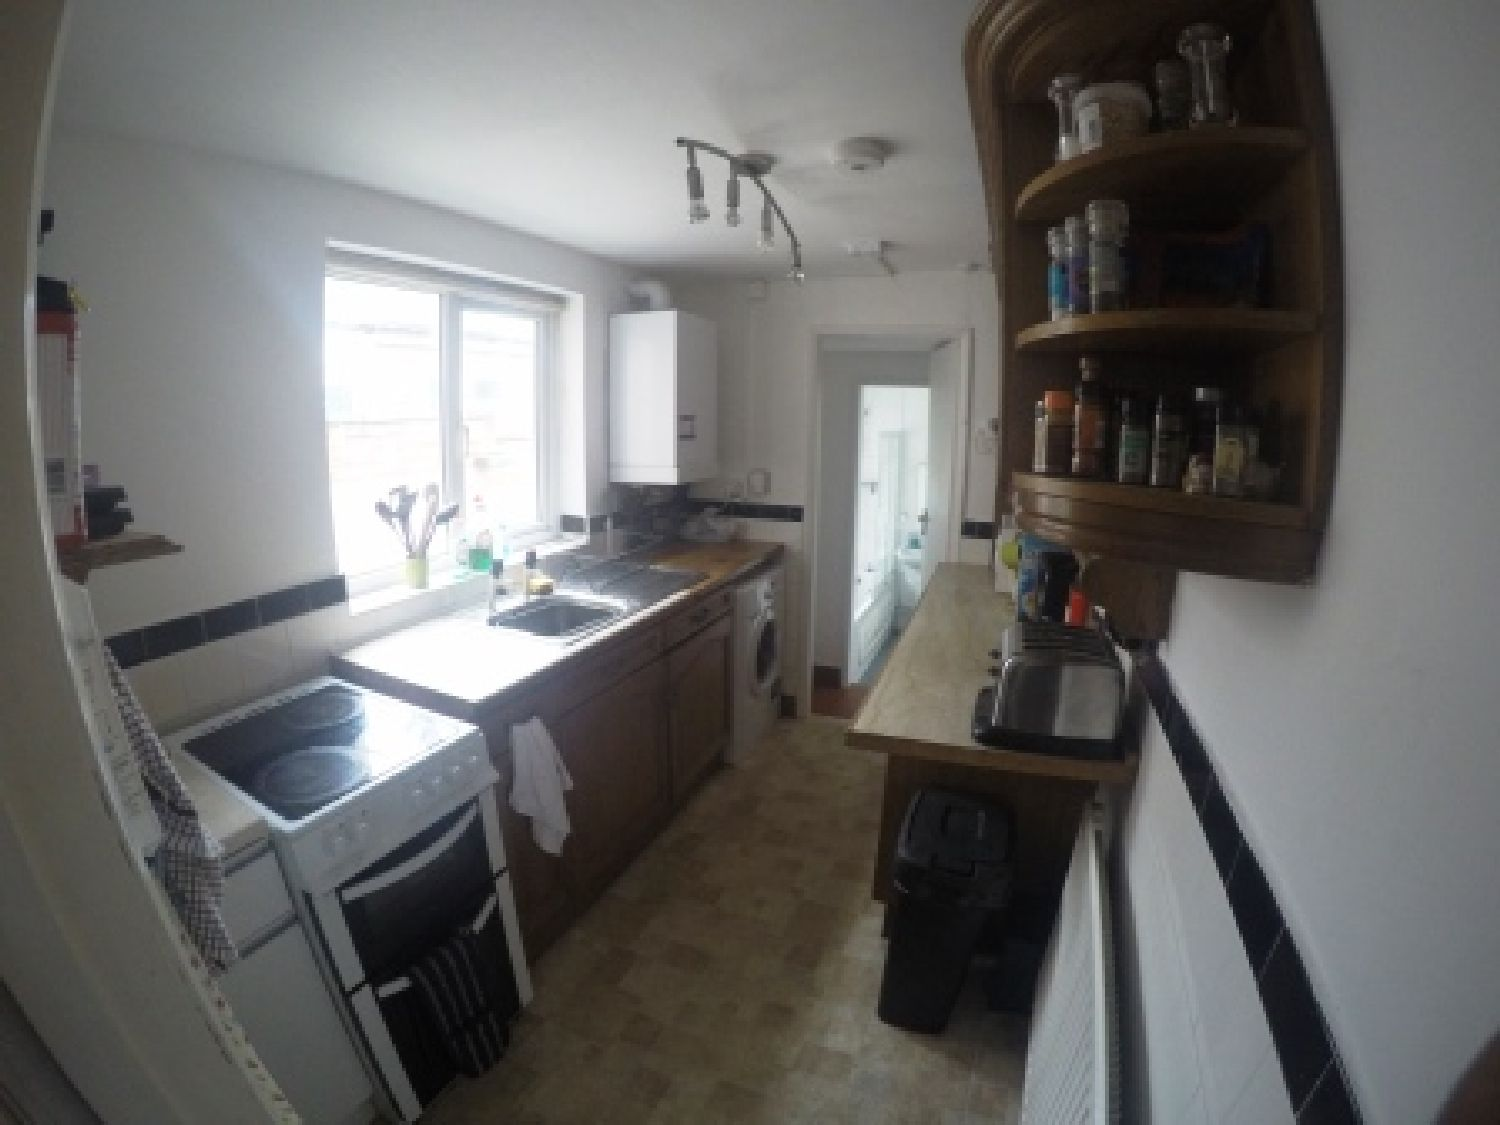 3 Bedrooms House Share for rent in Tiverton Road, Selly Oak, West Midlands, B29 6BS